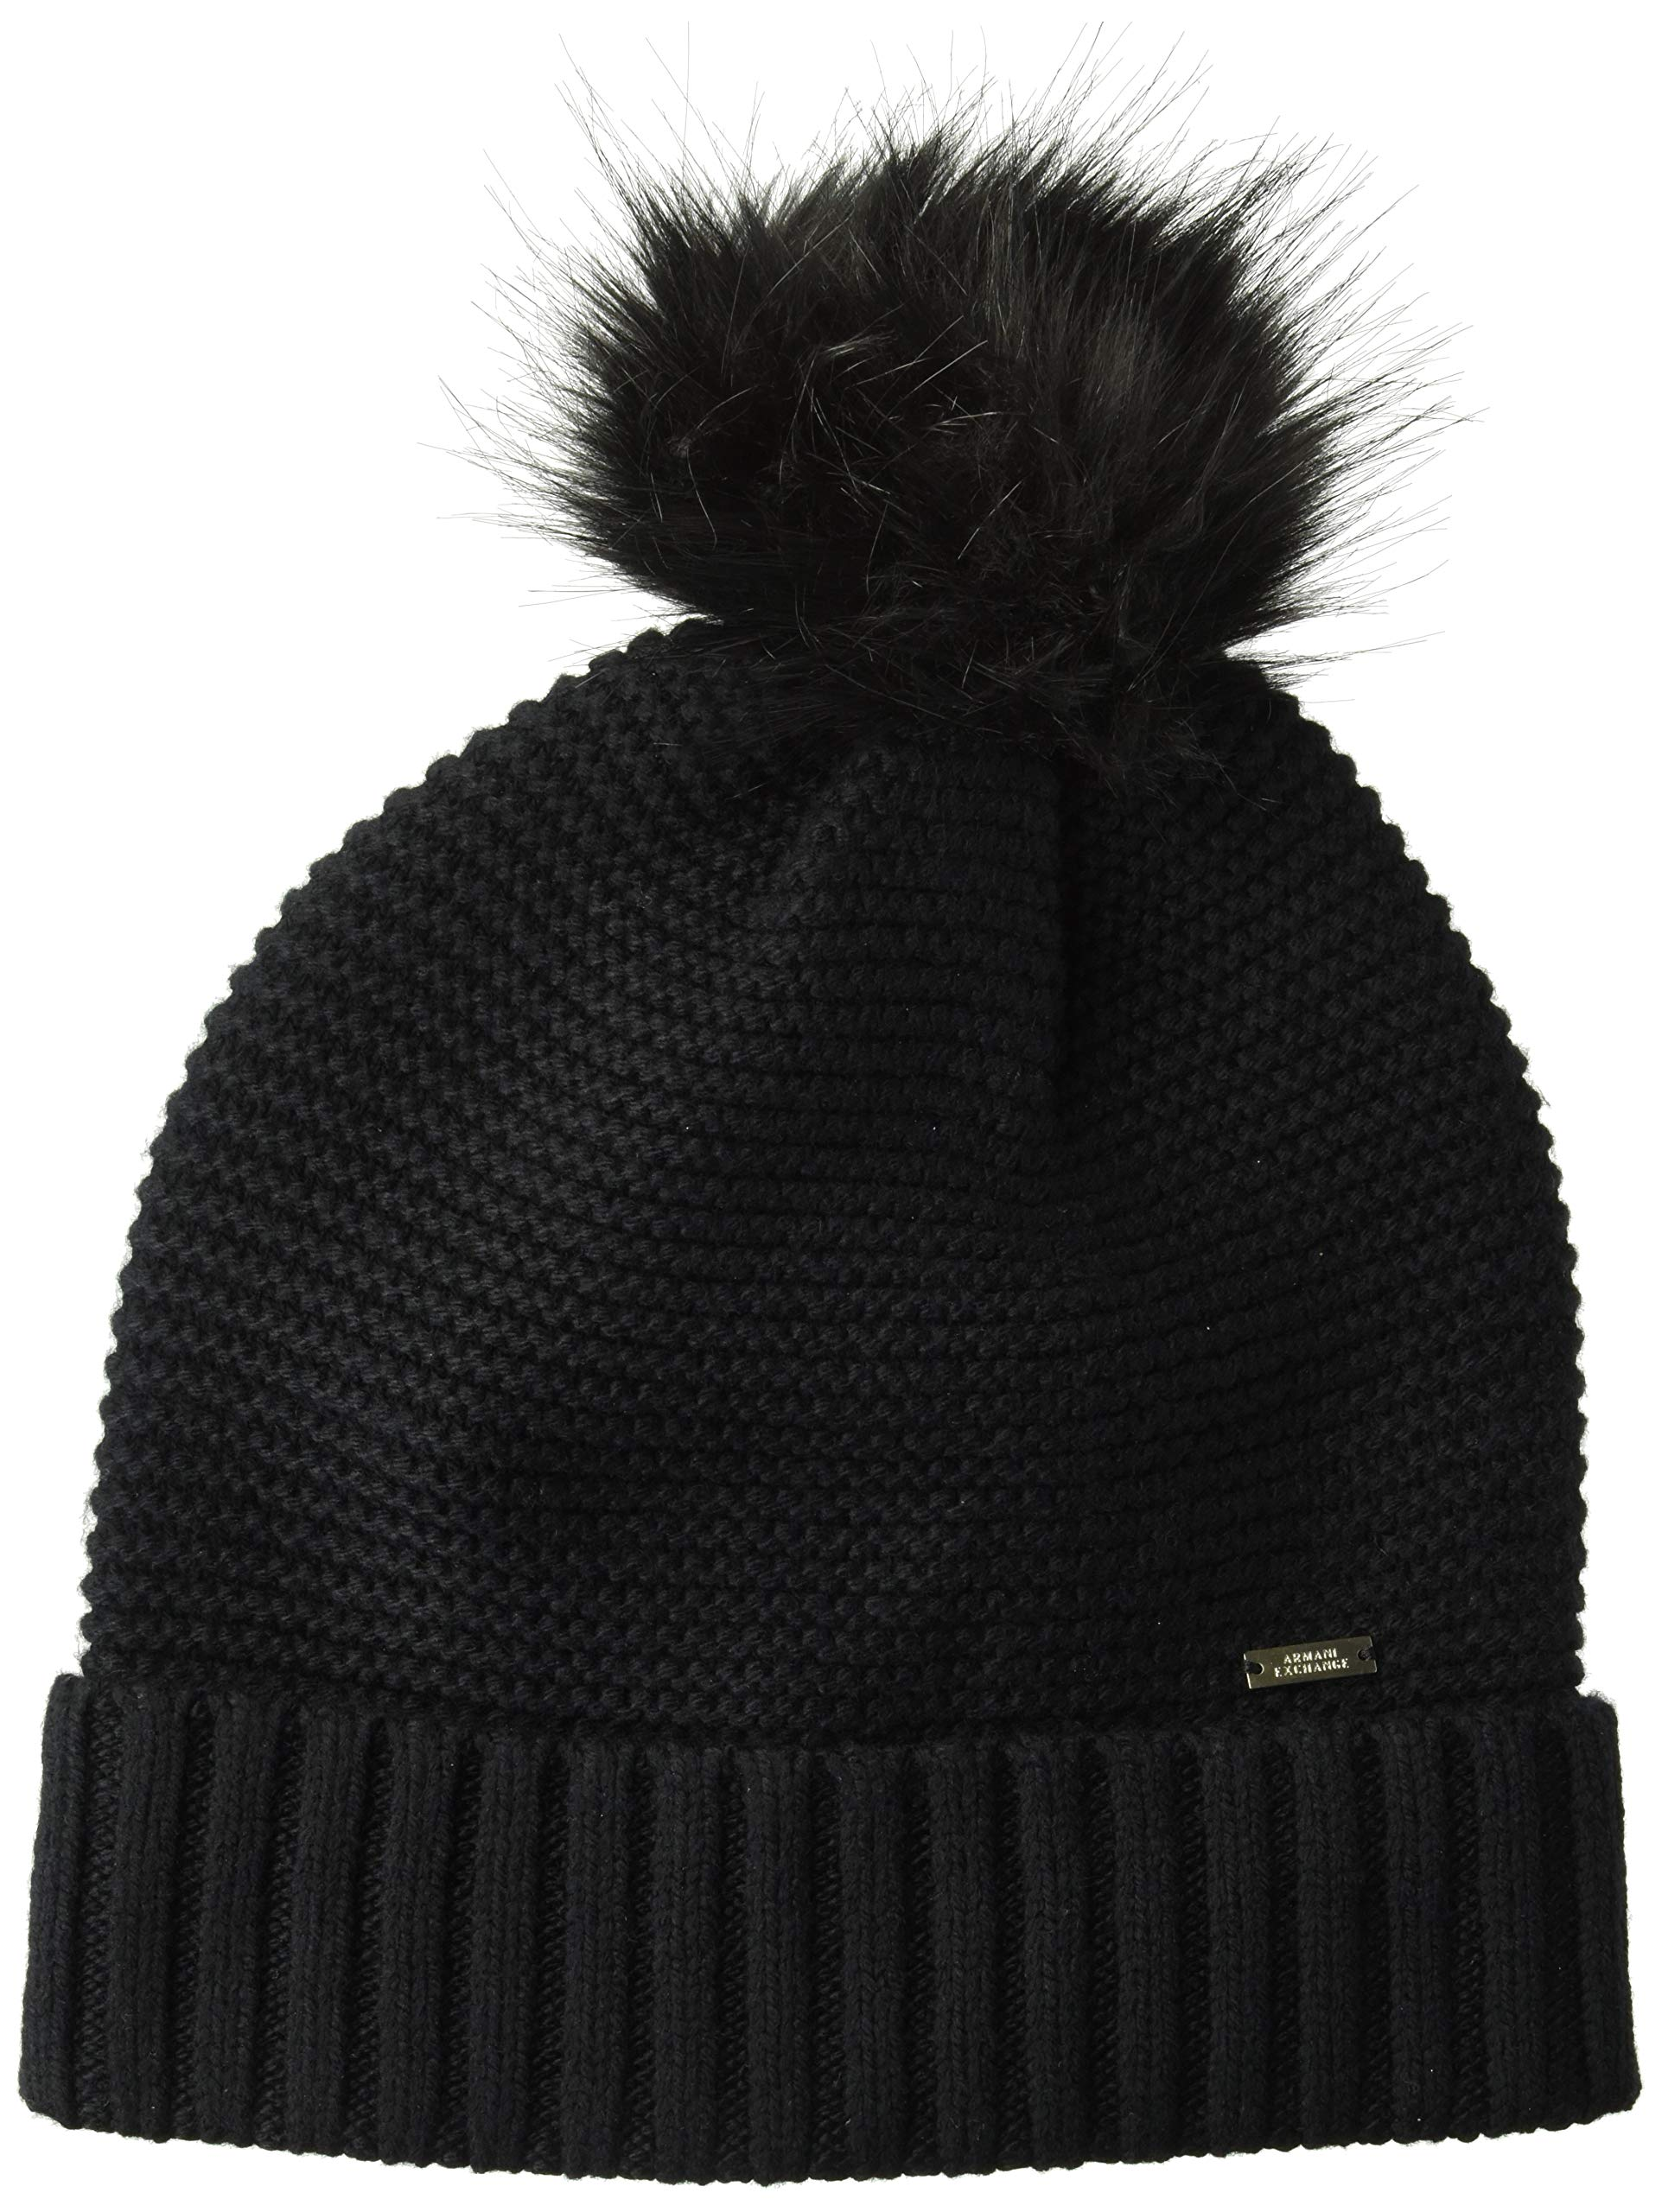 A|X Armani Exchange Women's AX Pom Beanie, Black, TU